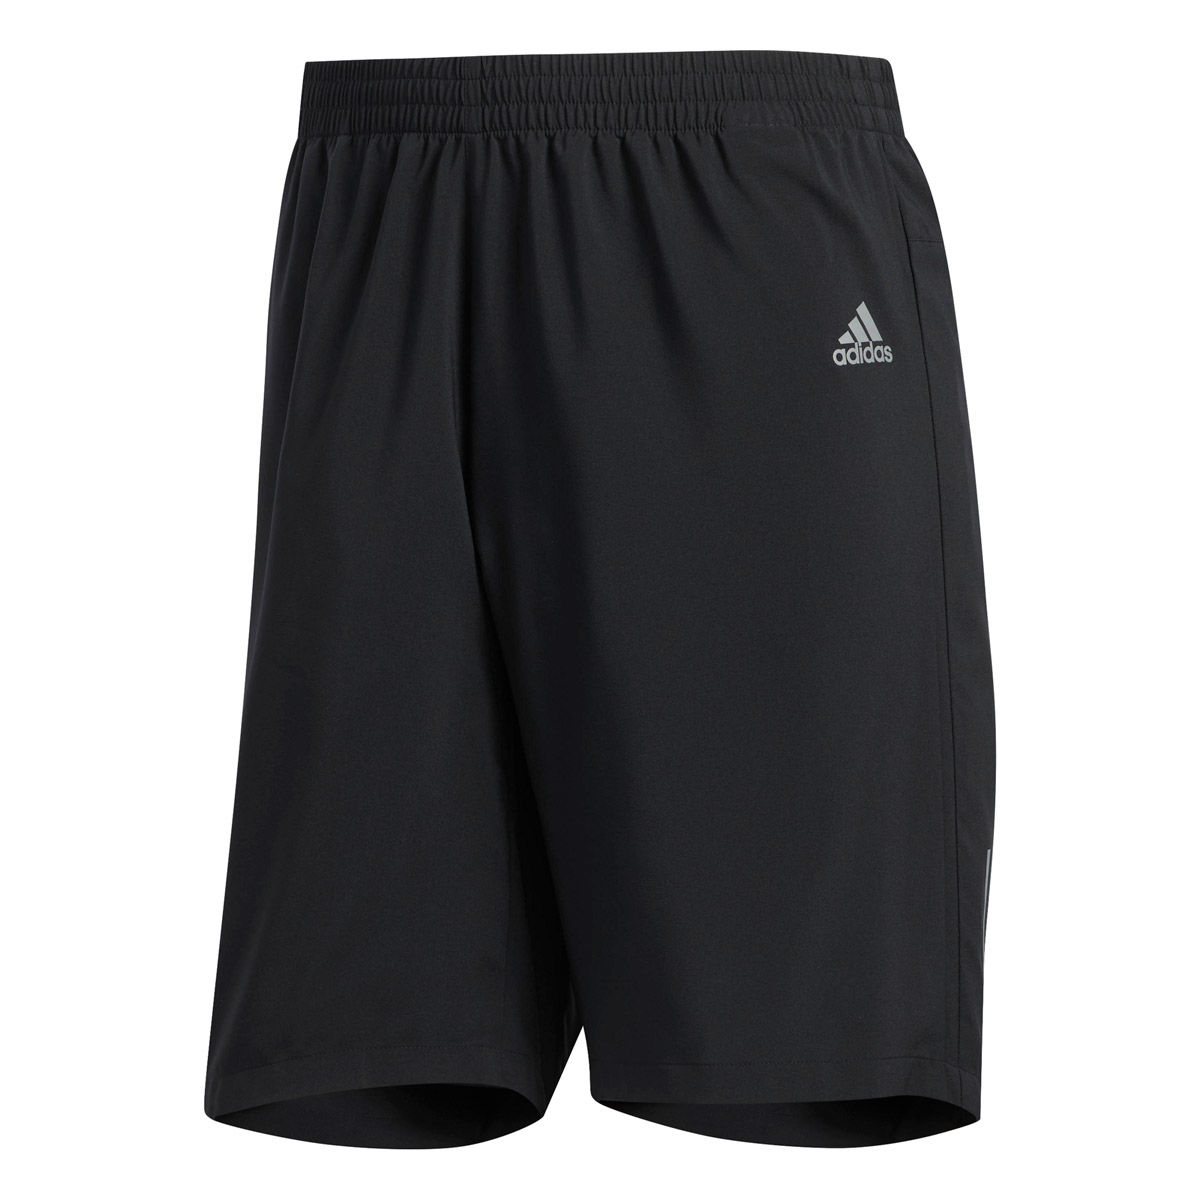 adidas Mens 9 Inch Run Short